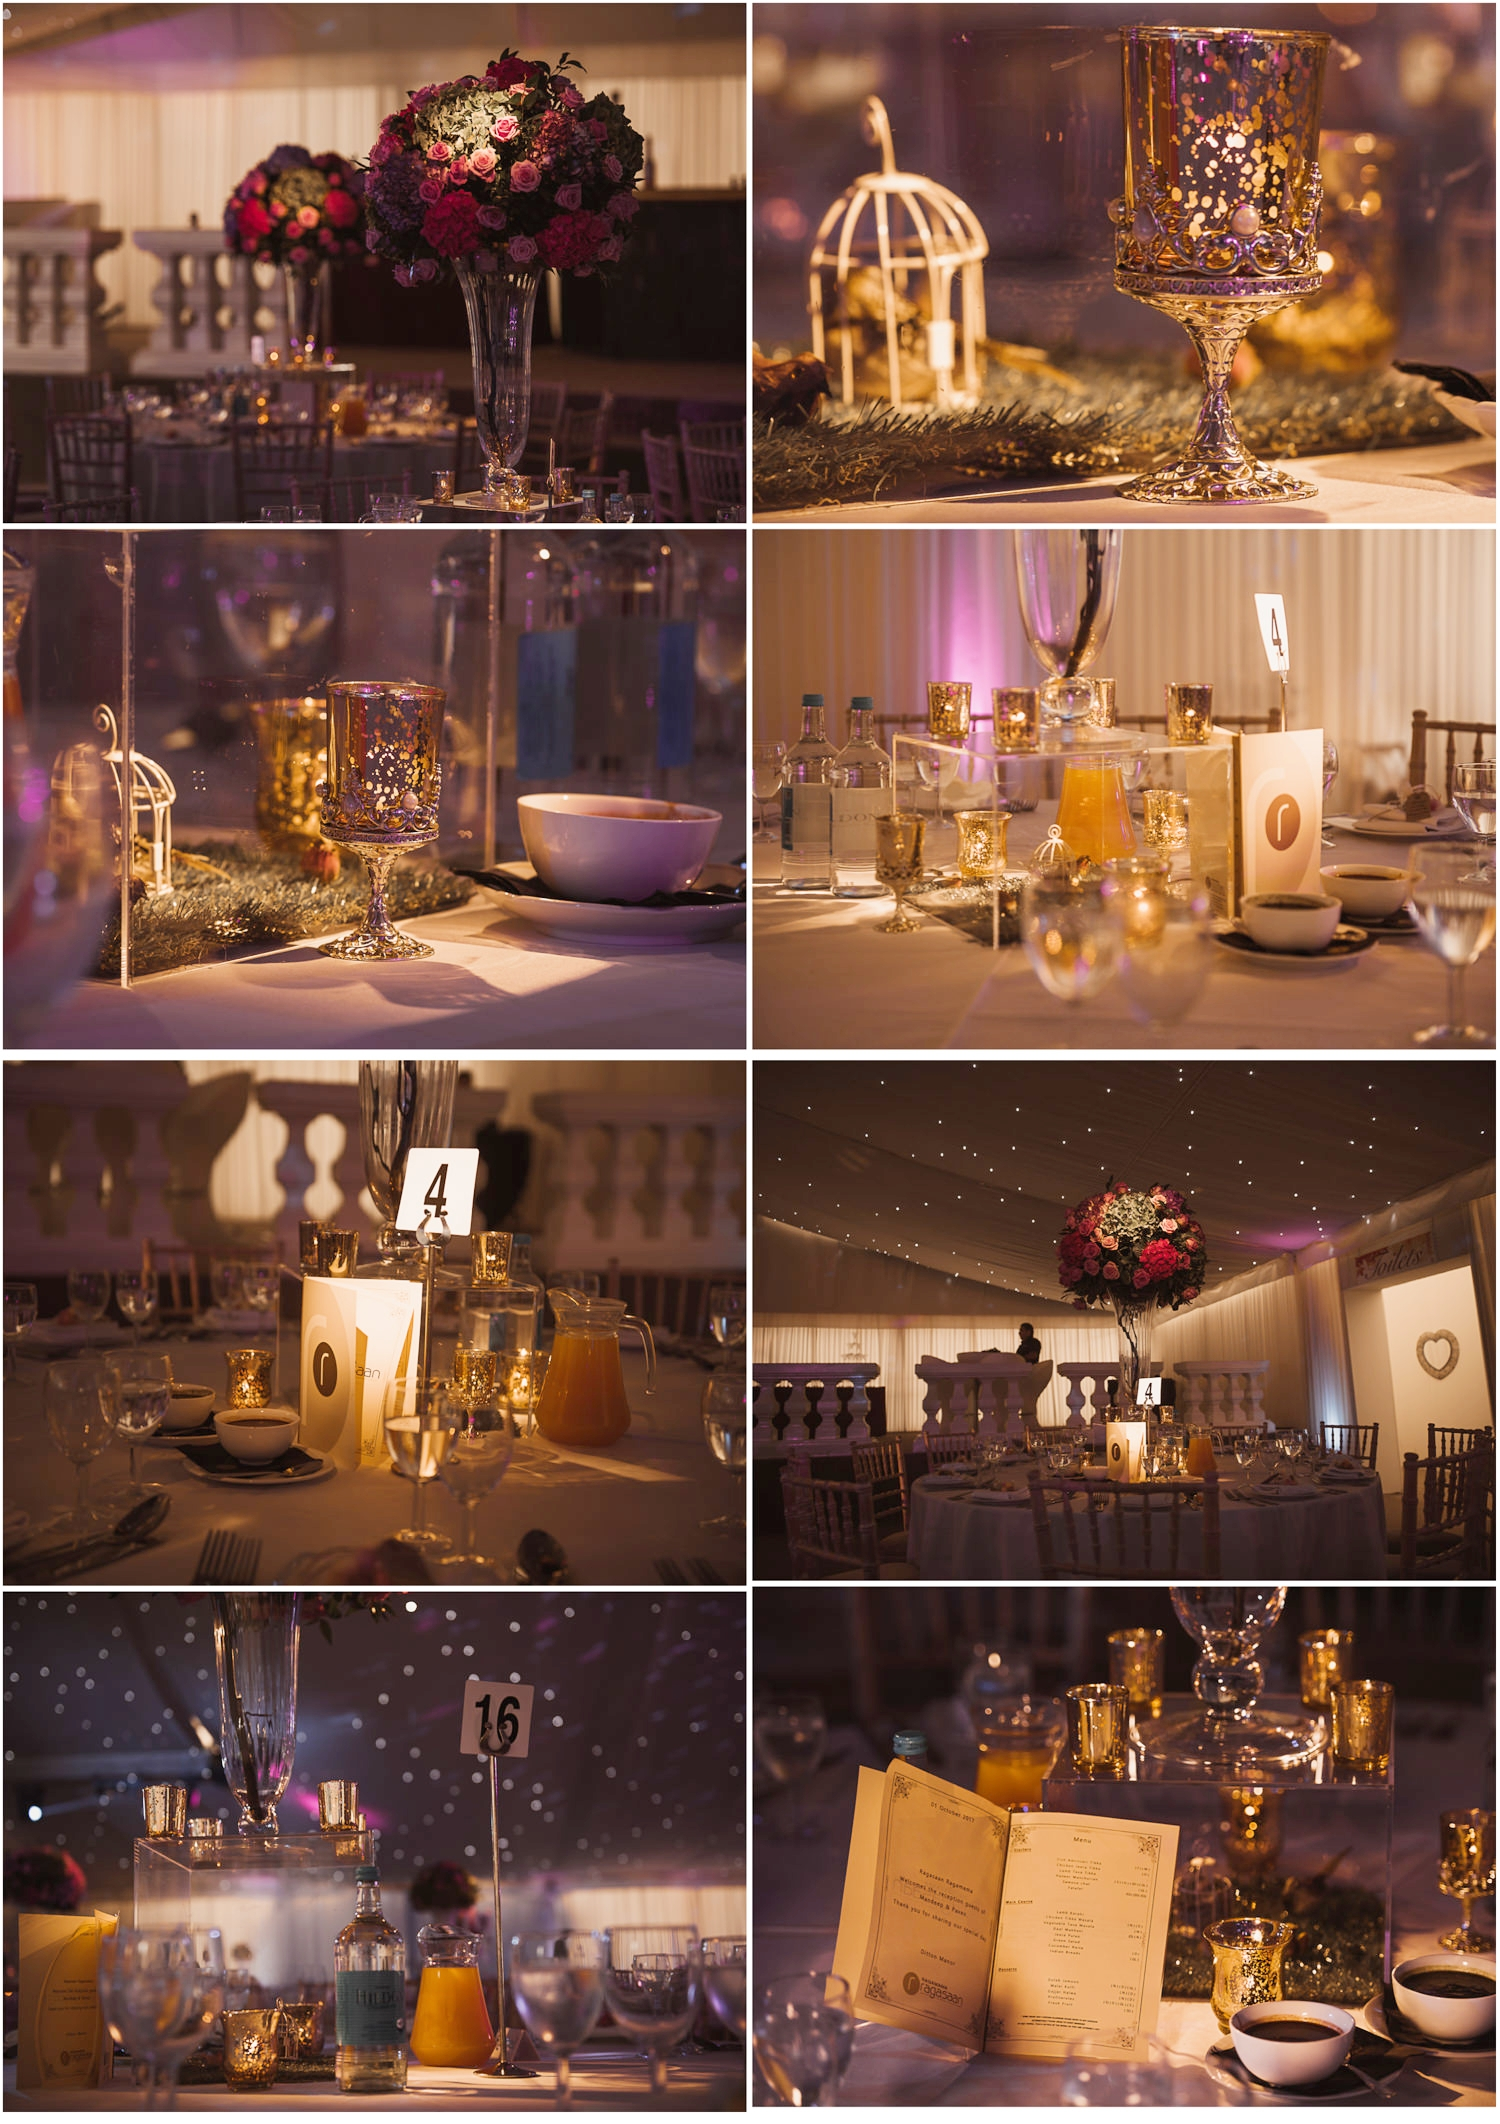 Reception details at Indian wedding